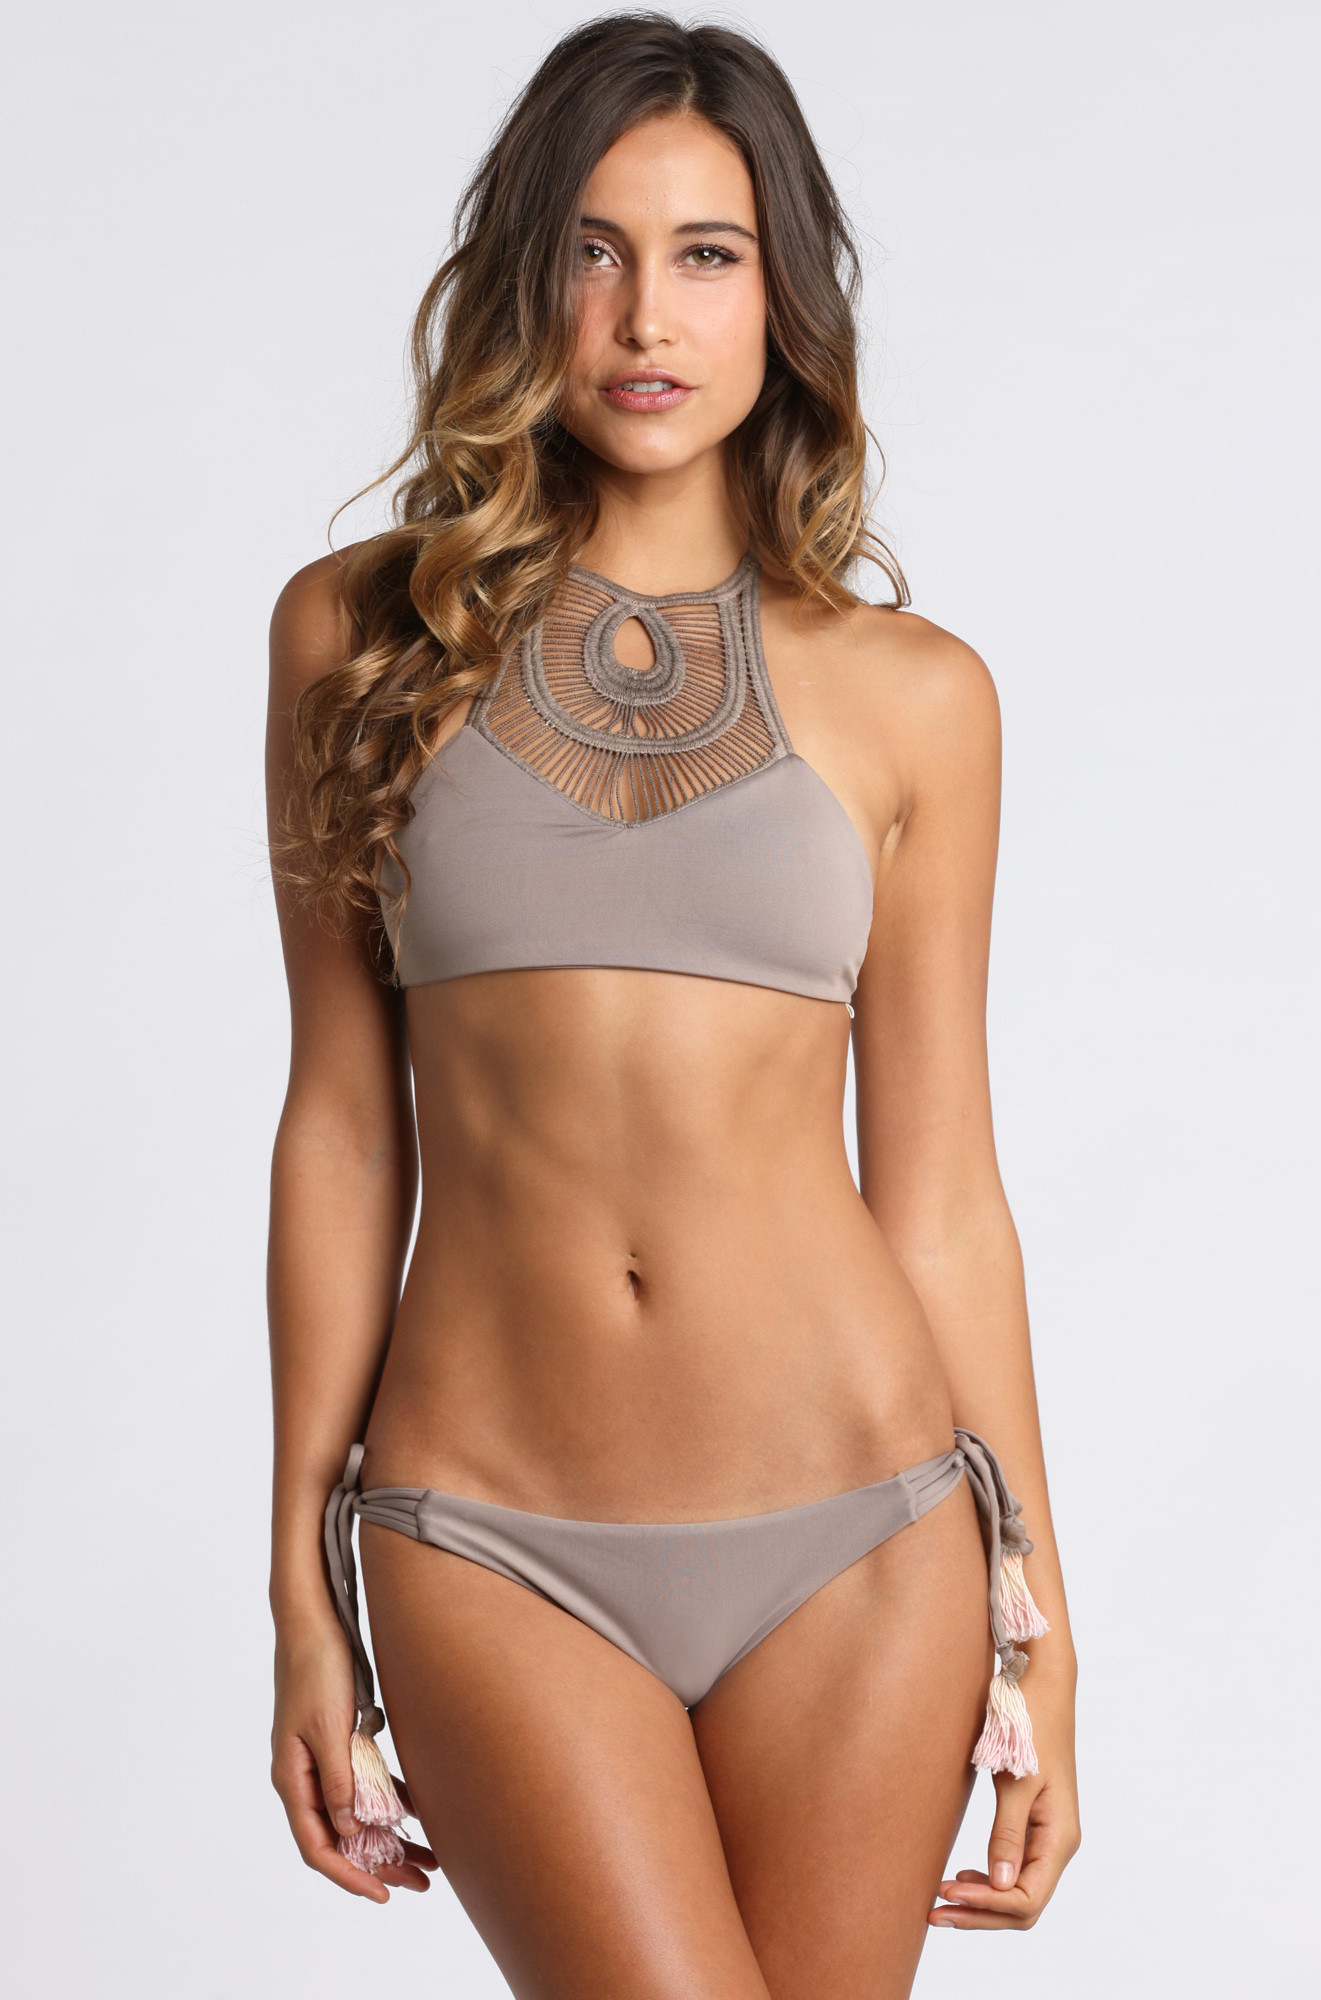 Putty-colored bathing suit